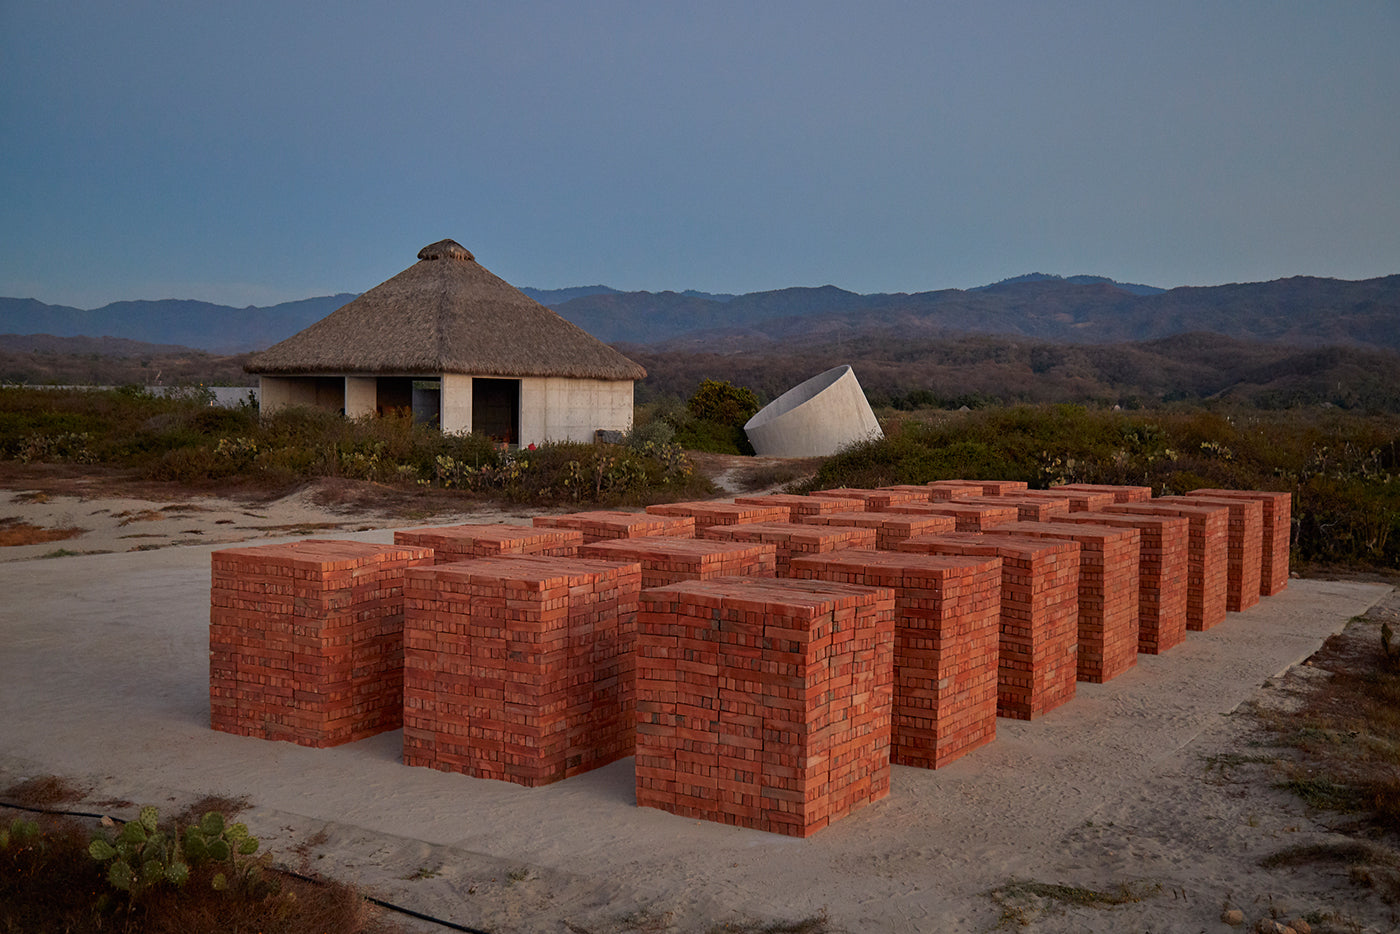 Building material in form of bricks stacked on the Casa Wabi grounds.